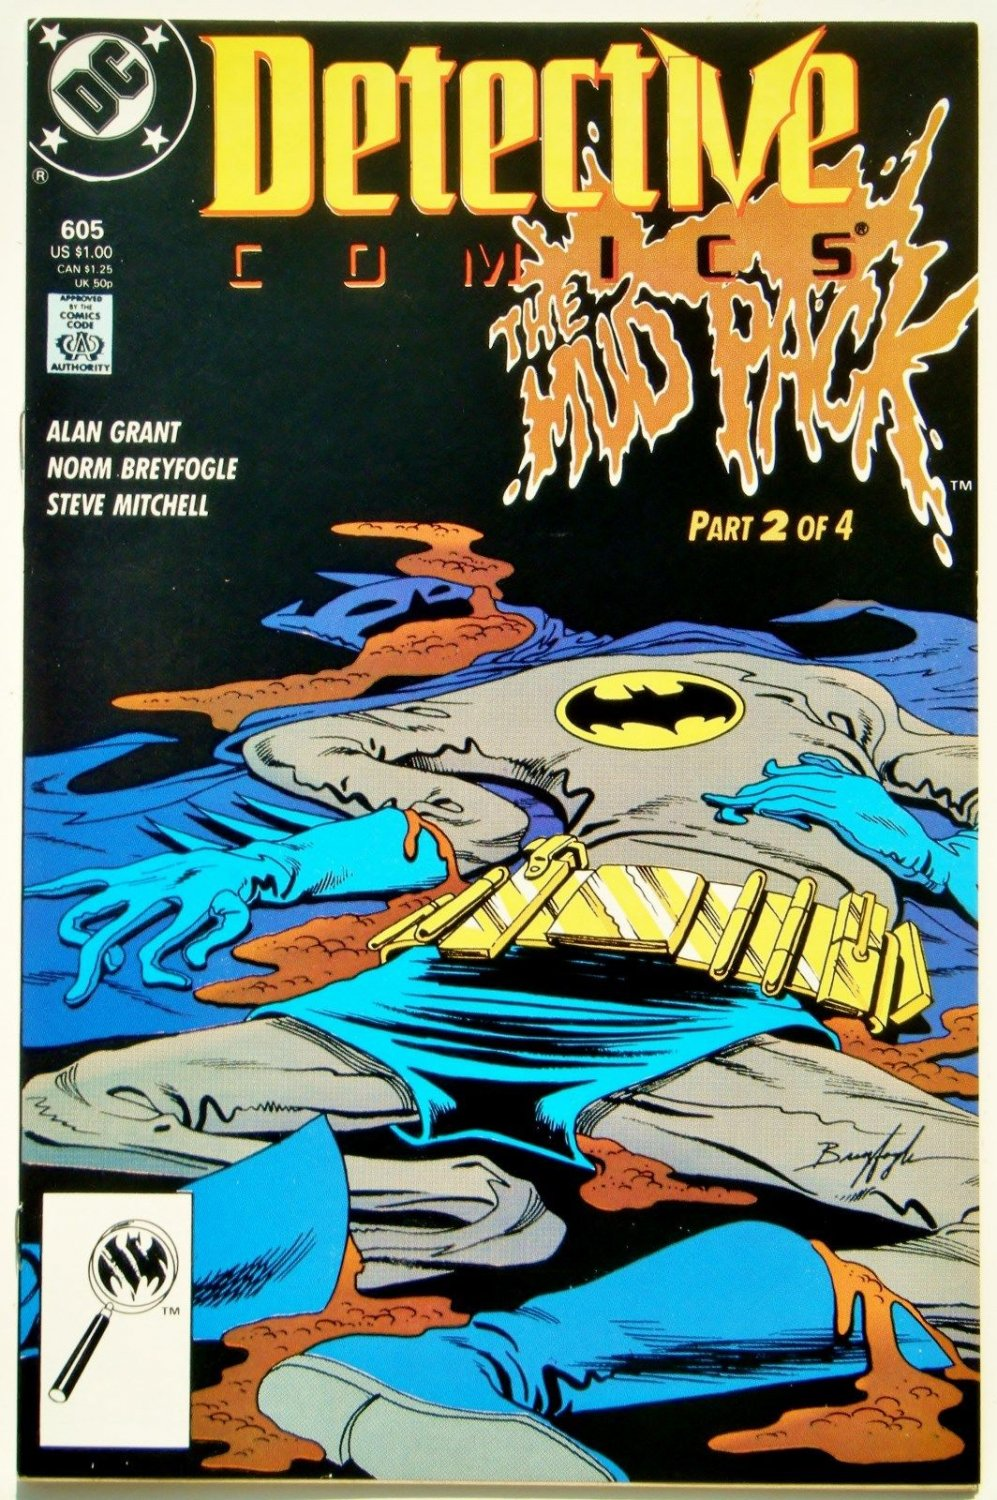 DETECTIVE COMICS #605 Vol. 1, BATMAN